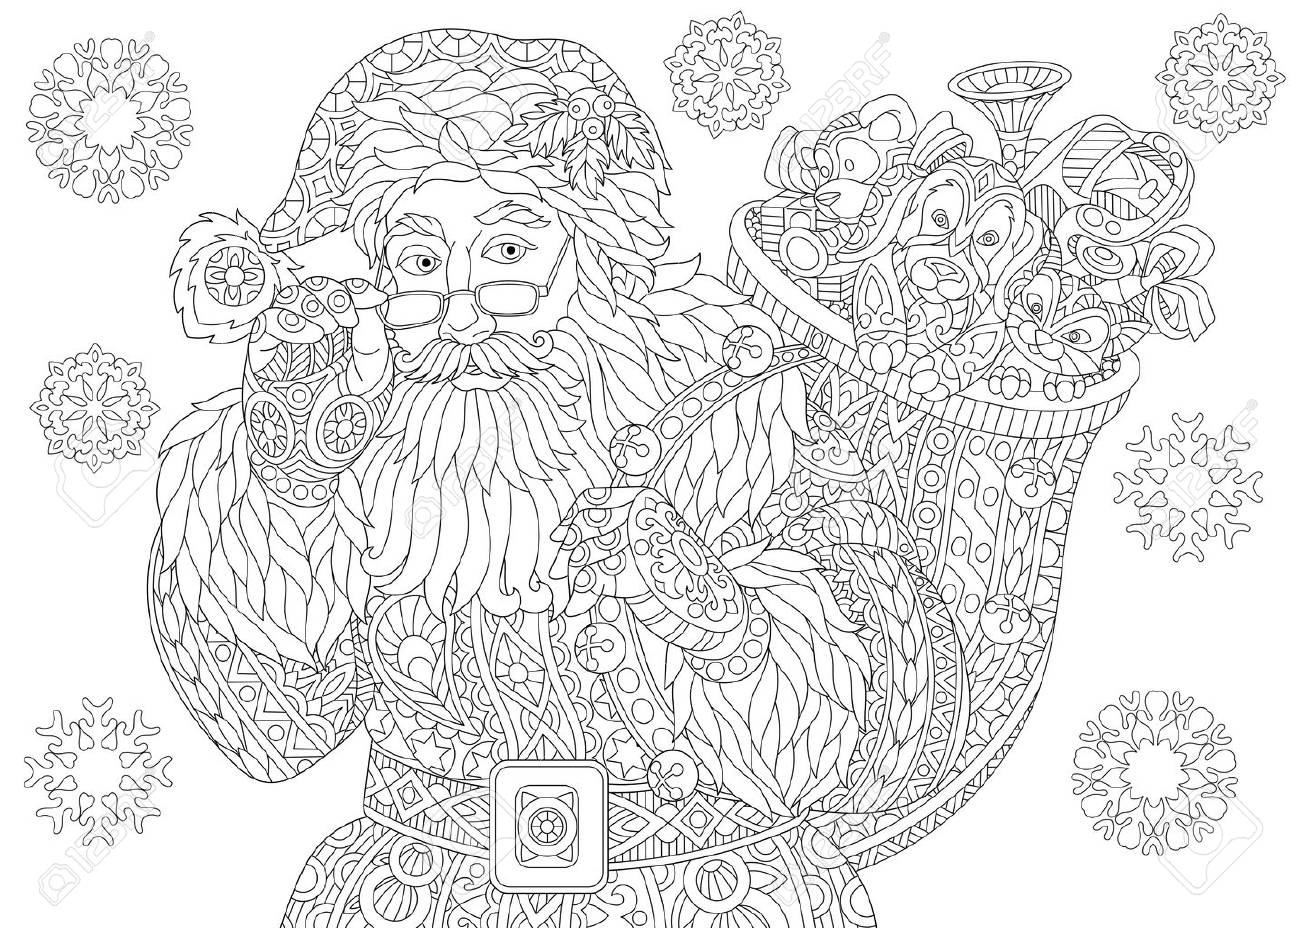 New Year Greeting Card Or Adult Antistress Coloring Book Page Of Santa Claus With Full Bag Holiday Gifts Christmas Vintage Snowflakes